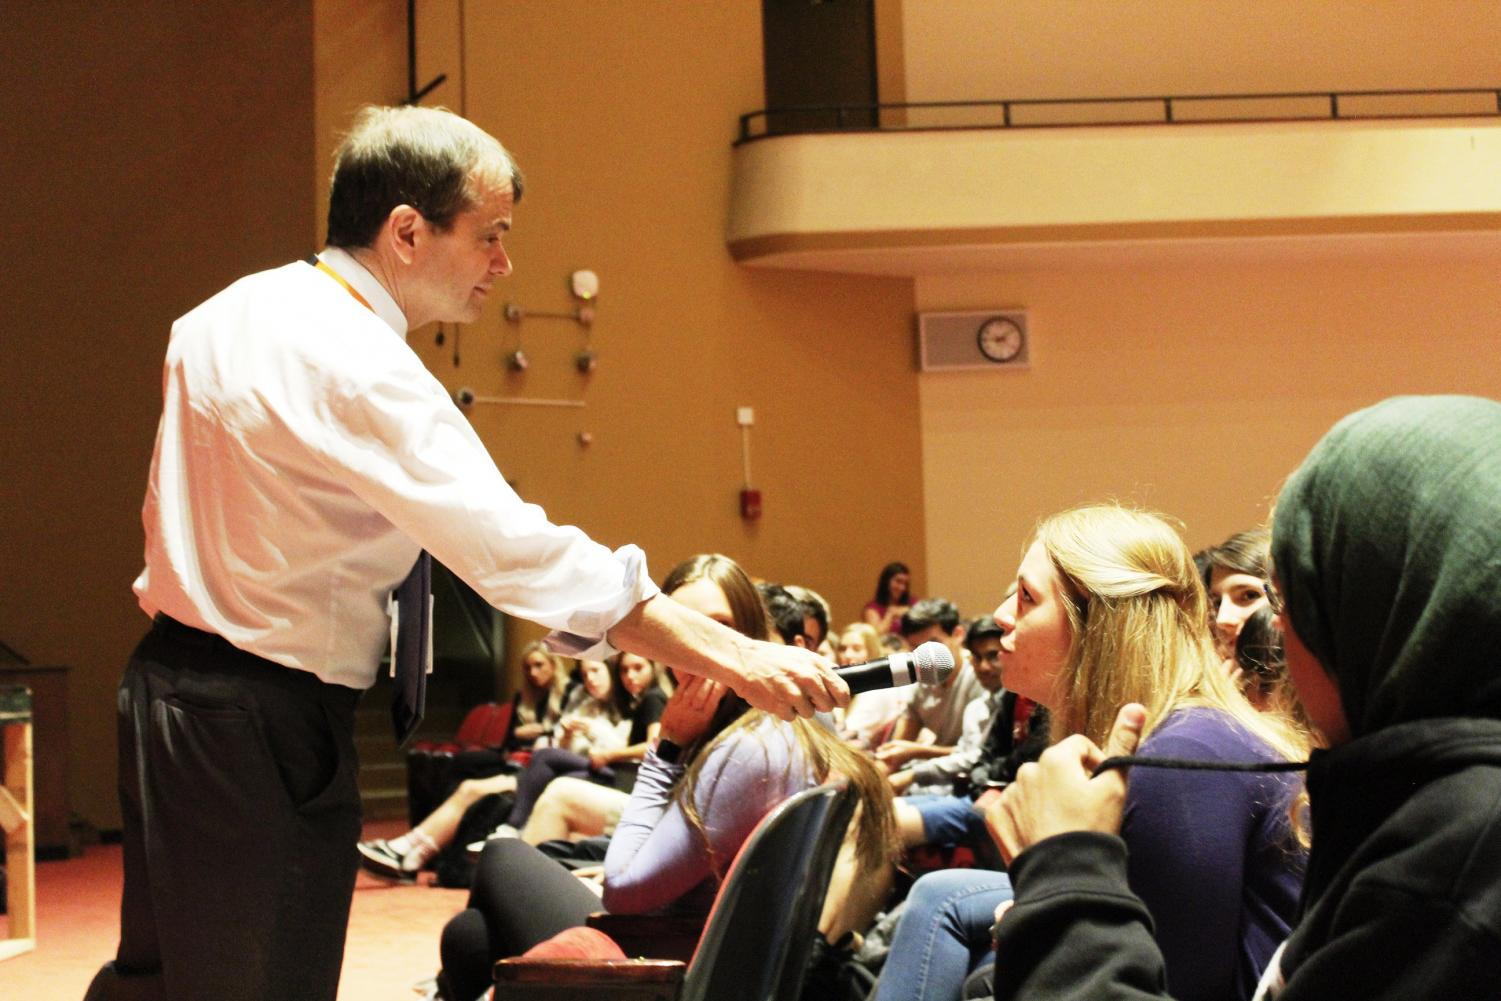 Congressmen Michael Bruce Quigley answers questions from students in the auditorium on Oct. 9 about the government and his work as a congressman.